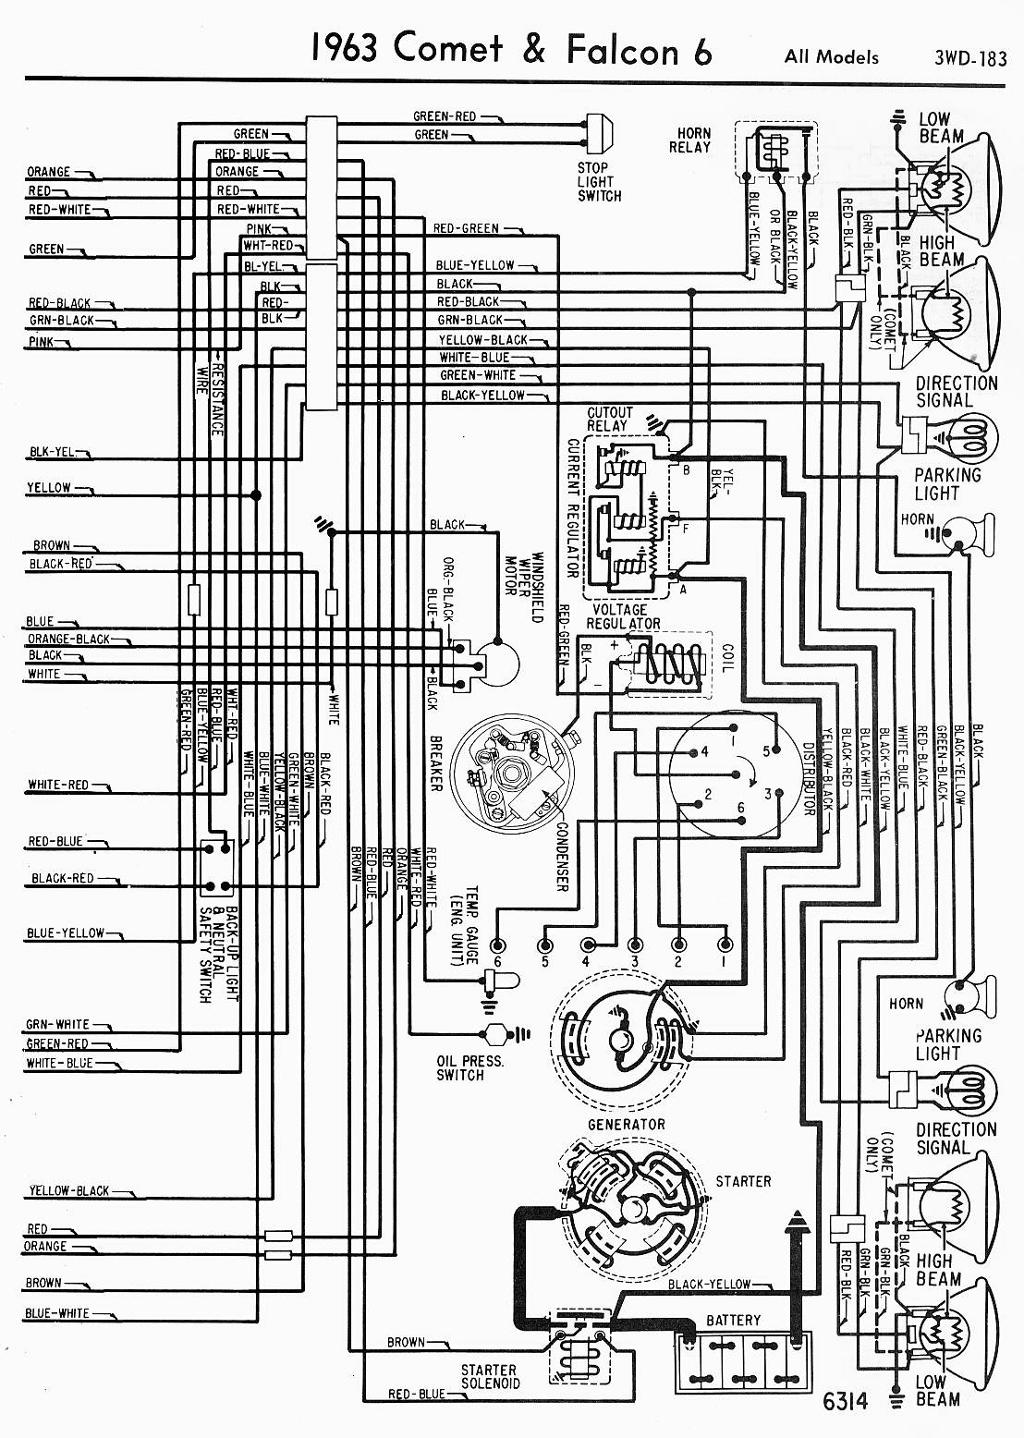 1963 Ford Fairlane Wiring Diagram - Diagram Design Sources electrical-solid  - electrical-solid.nius-icbosa.itnius-icbosa.it